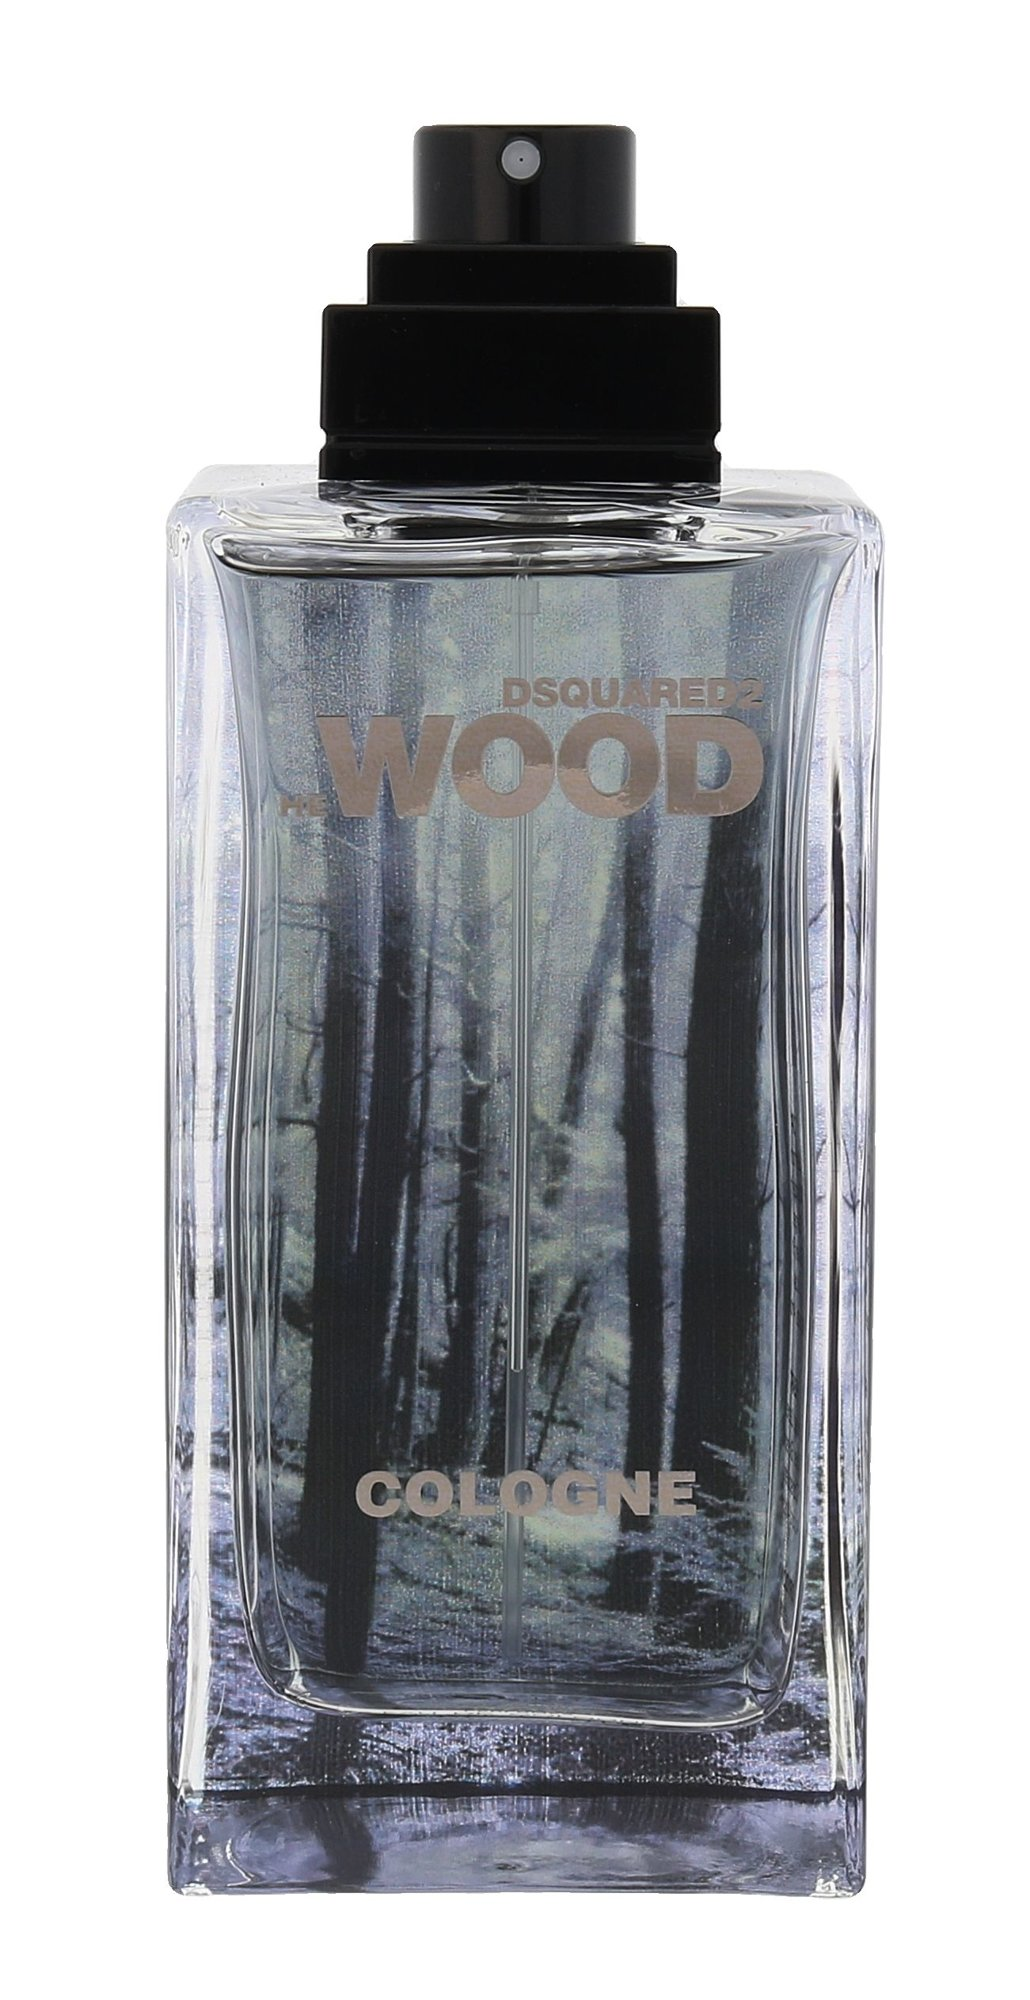 Dsquared2 He Wood Cologne Cologne 150ml